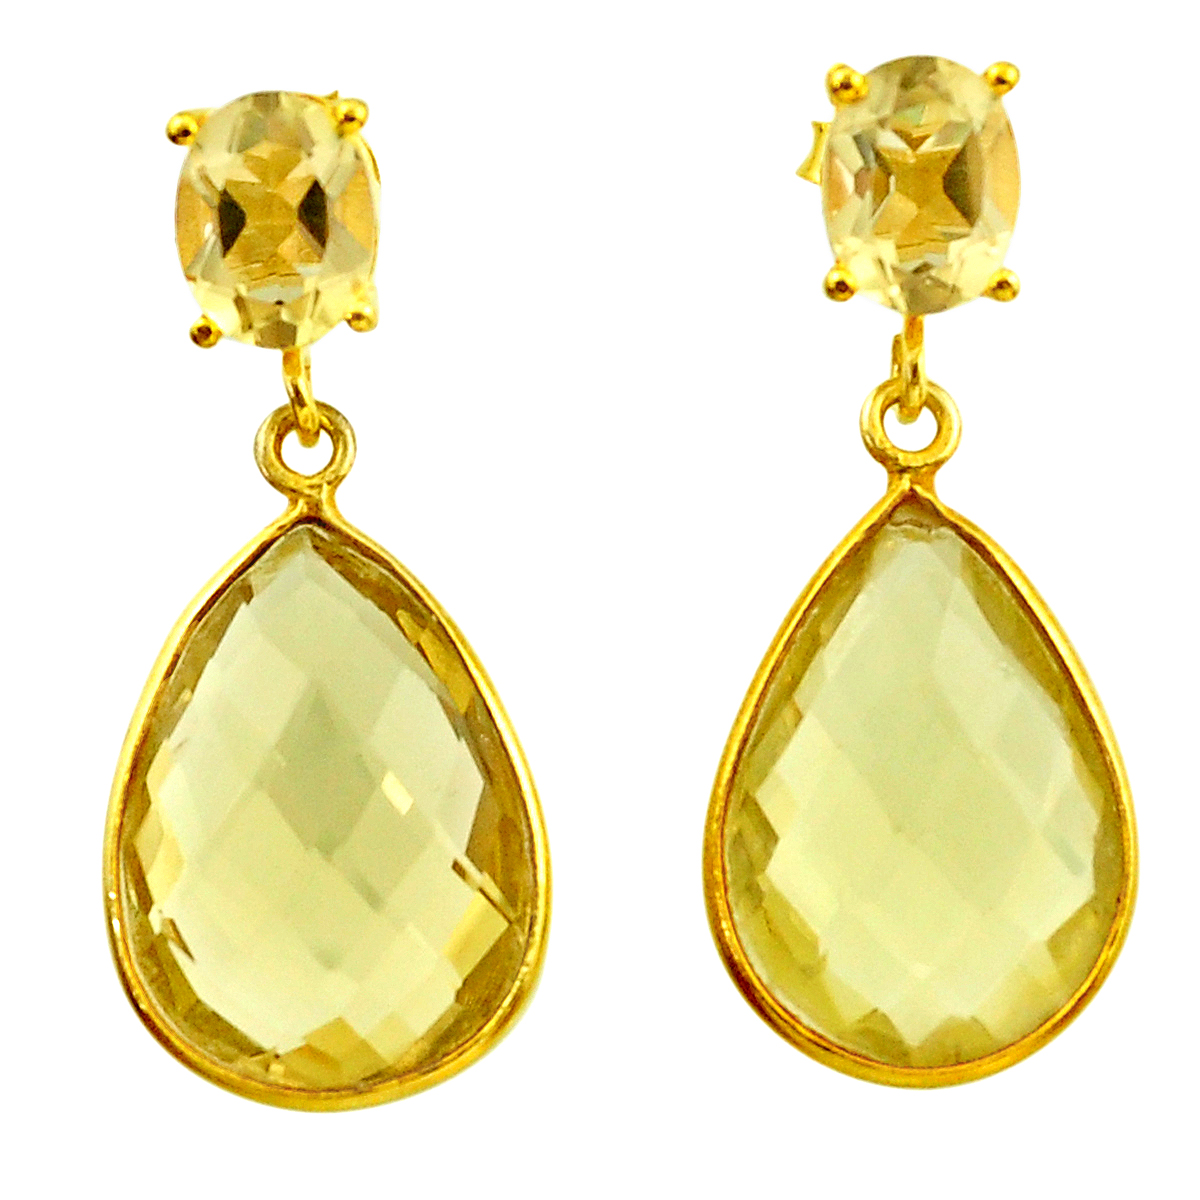 A pair of 925 silver gilt drop earrings set with faceted cut citrines, L. 3.2cm.